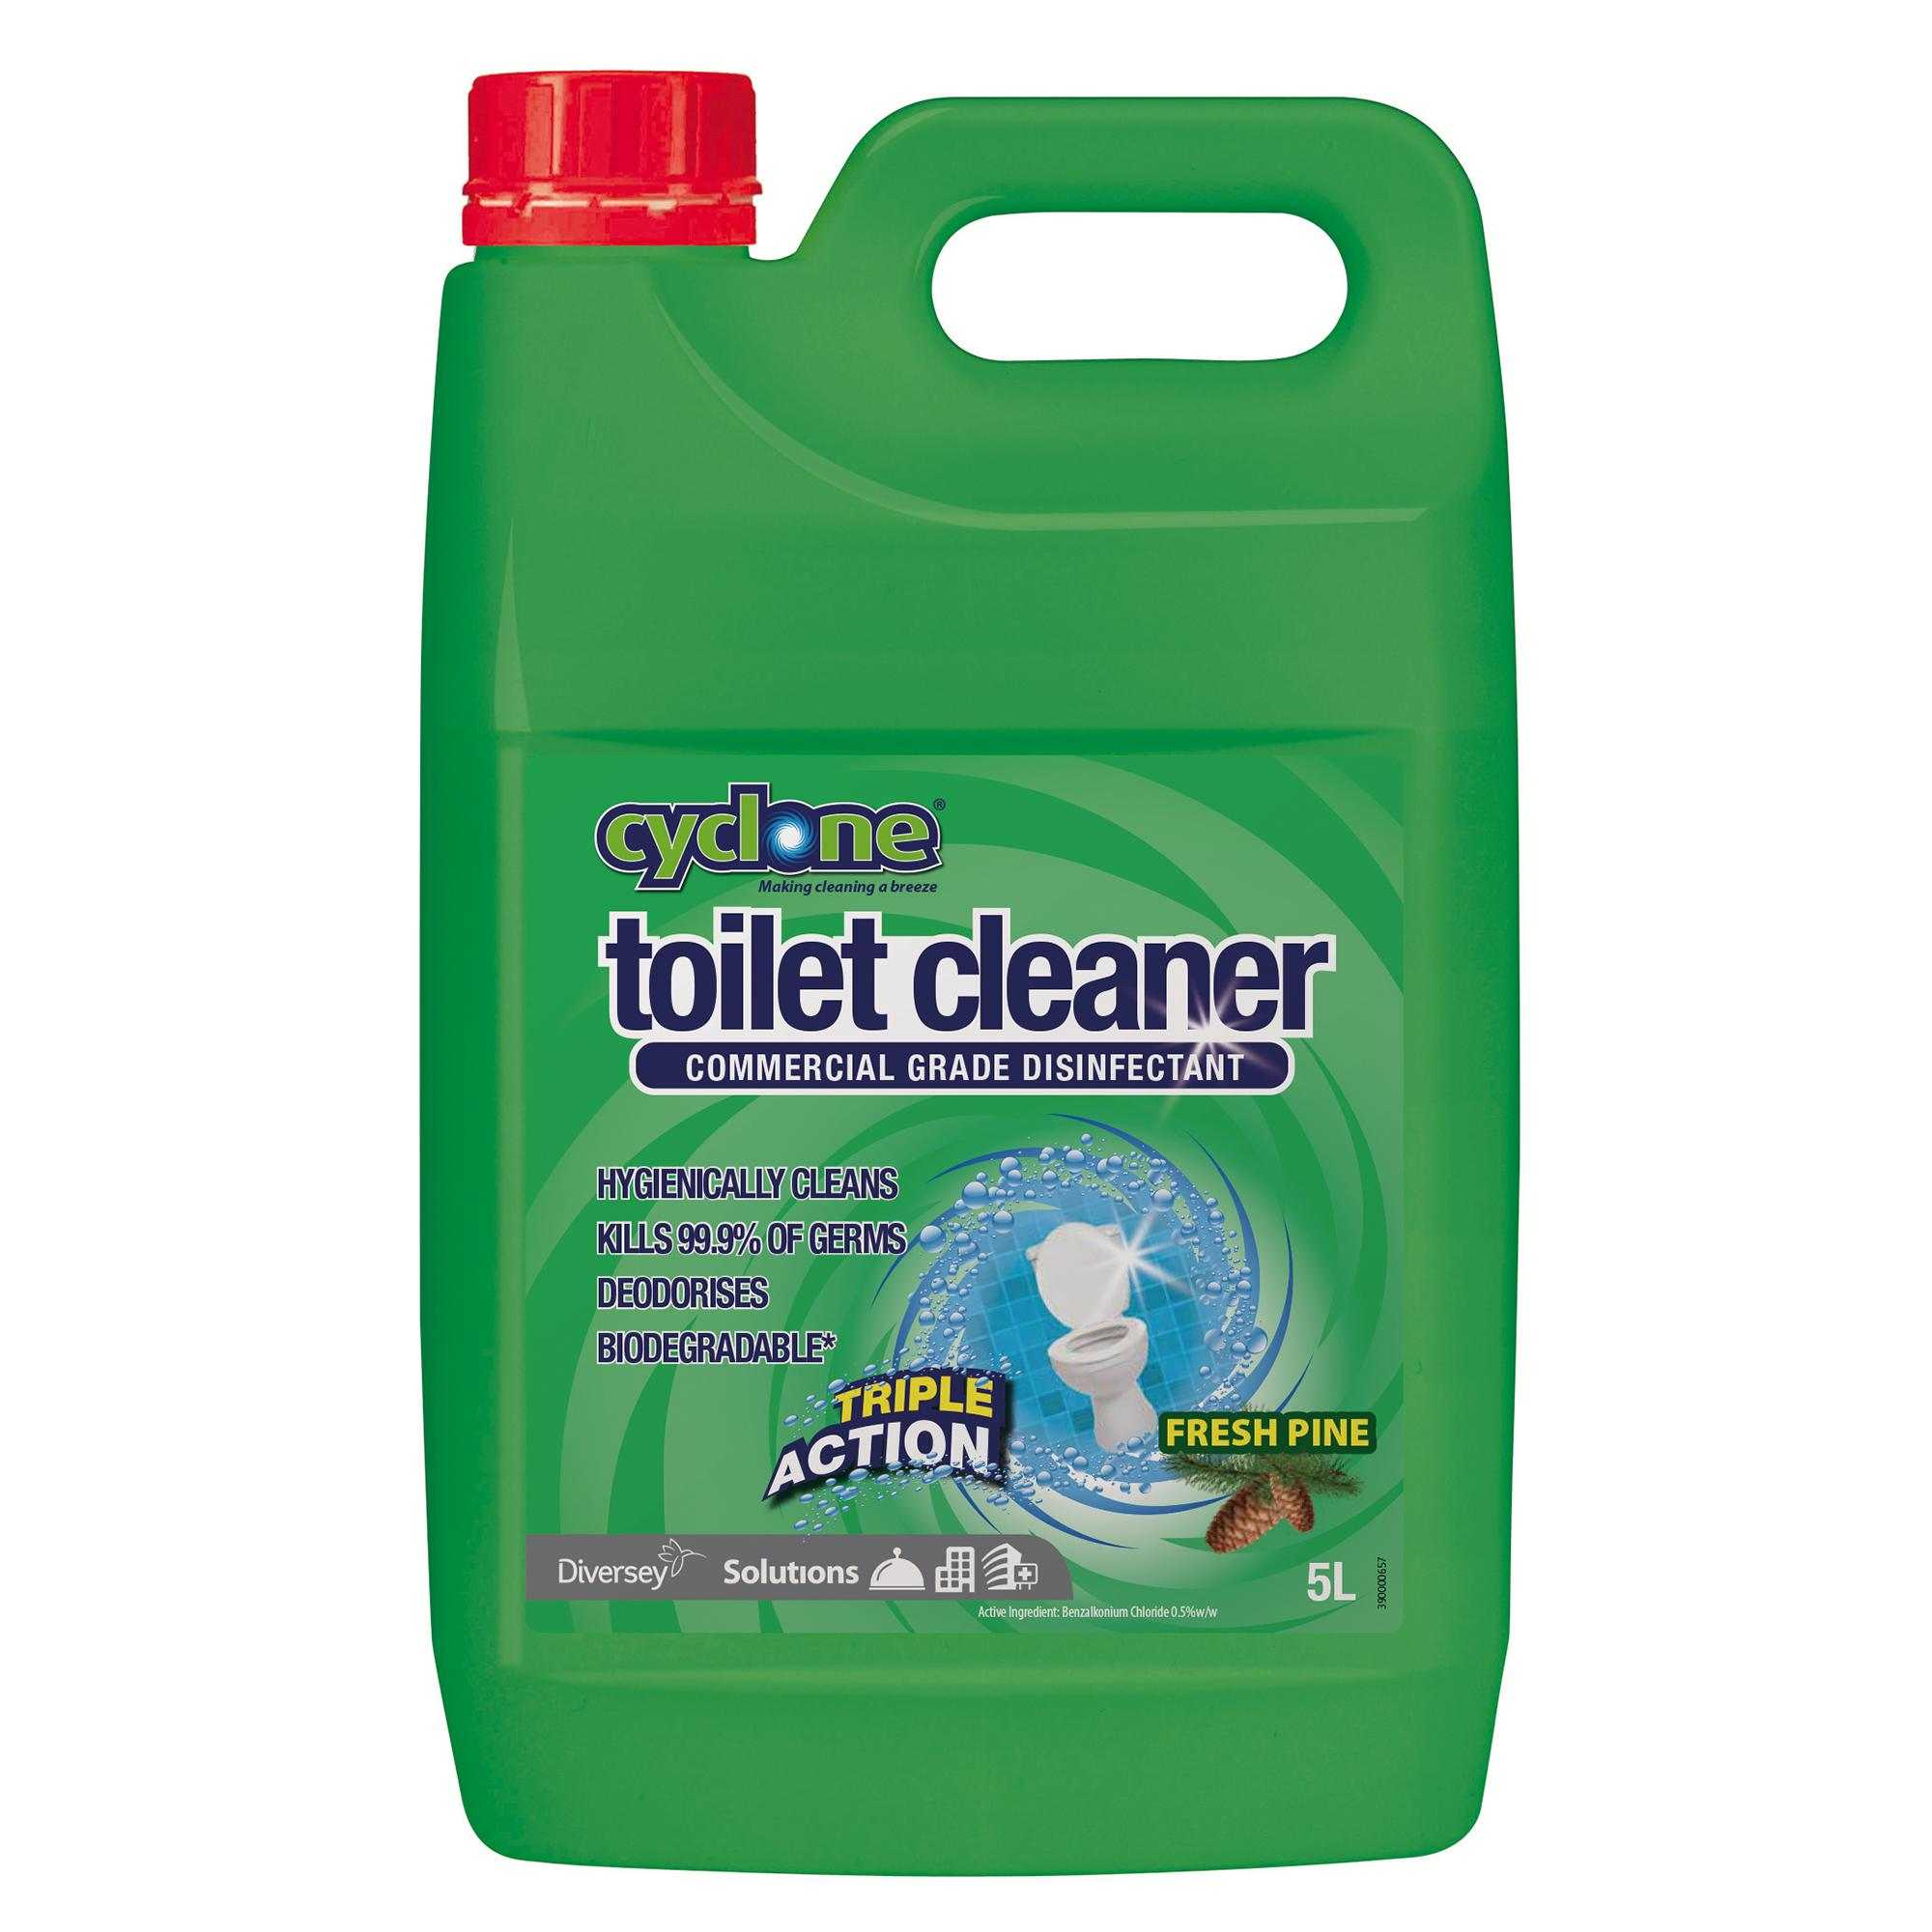 5772093%20Cyclone%20Toilet%20Cleaner%20NZ%20_%205L%202000x2000px.jpg